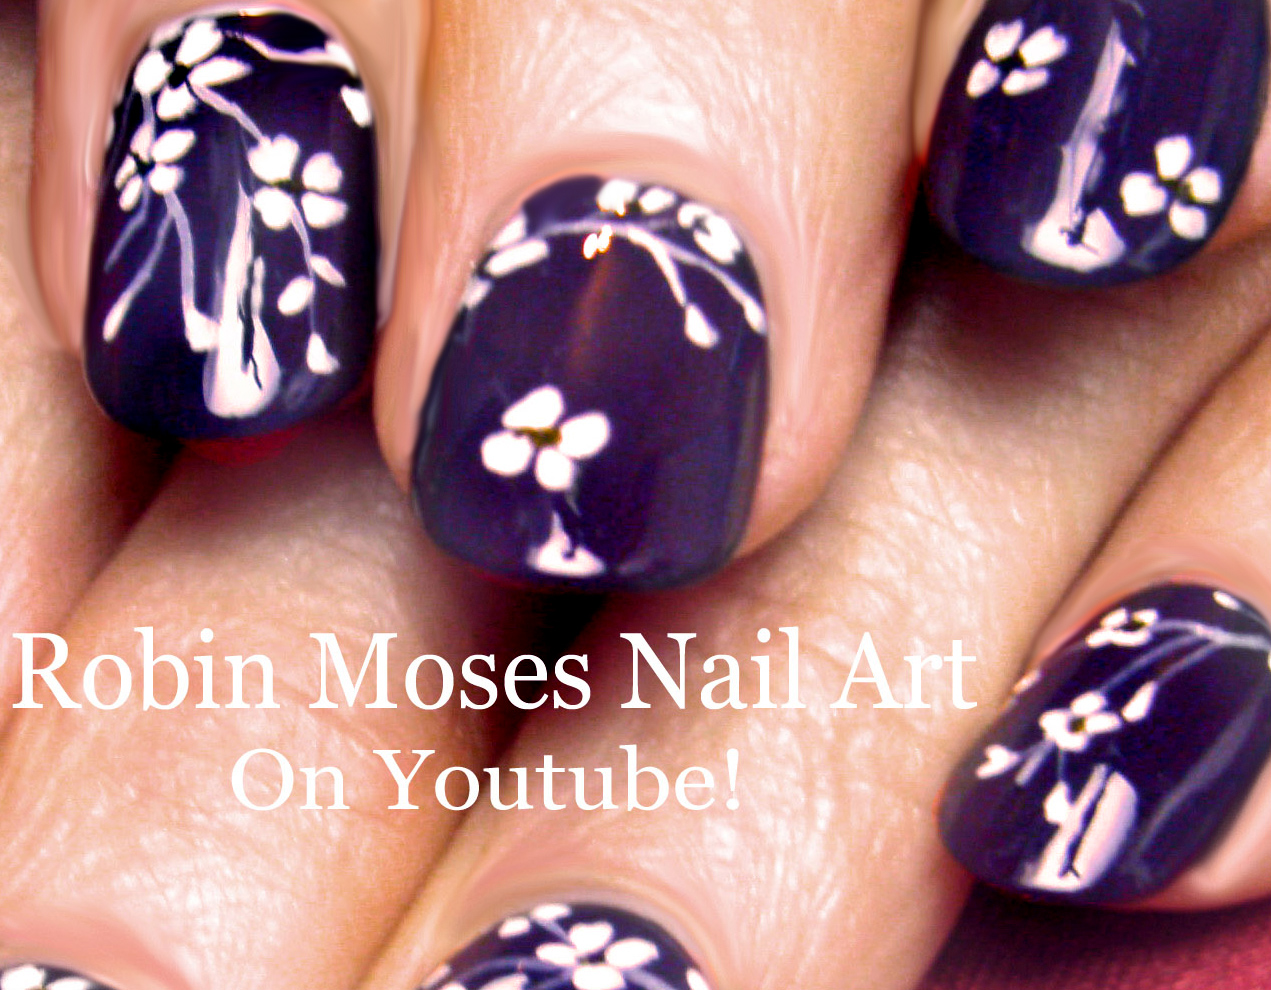 Robin moses nail art cherry blossom nail art 2016 full length white flower nails cherry blossom floral nail art design tutorial prinsesfo Gallery